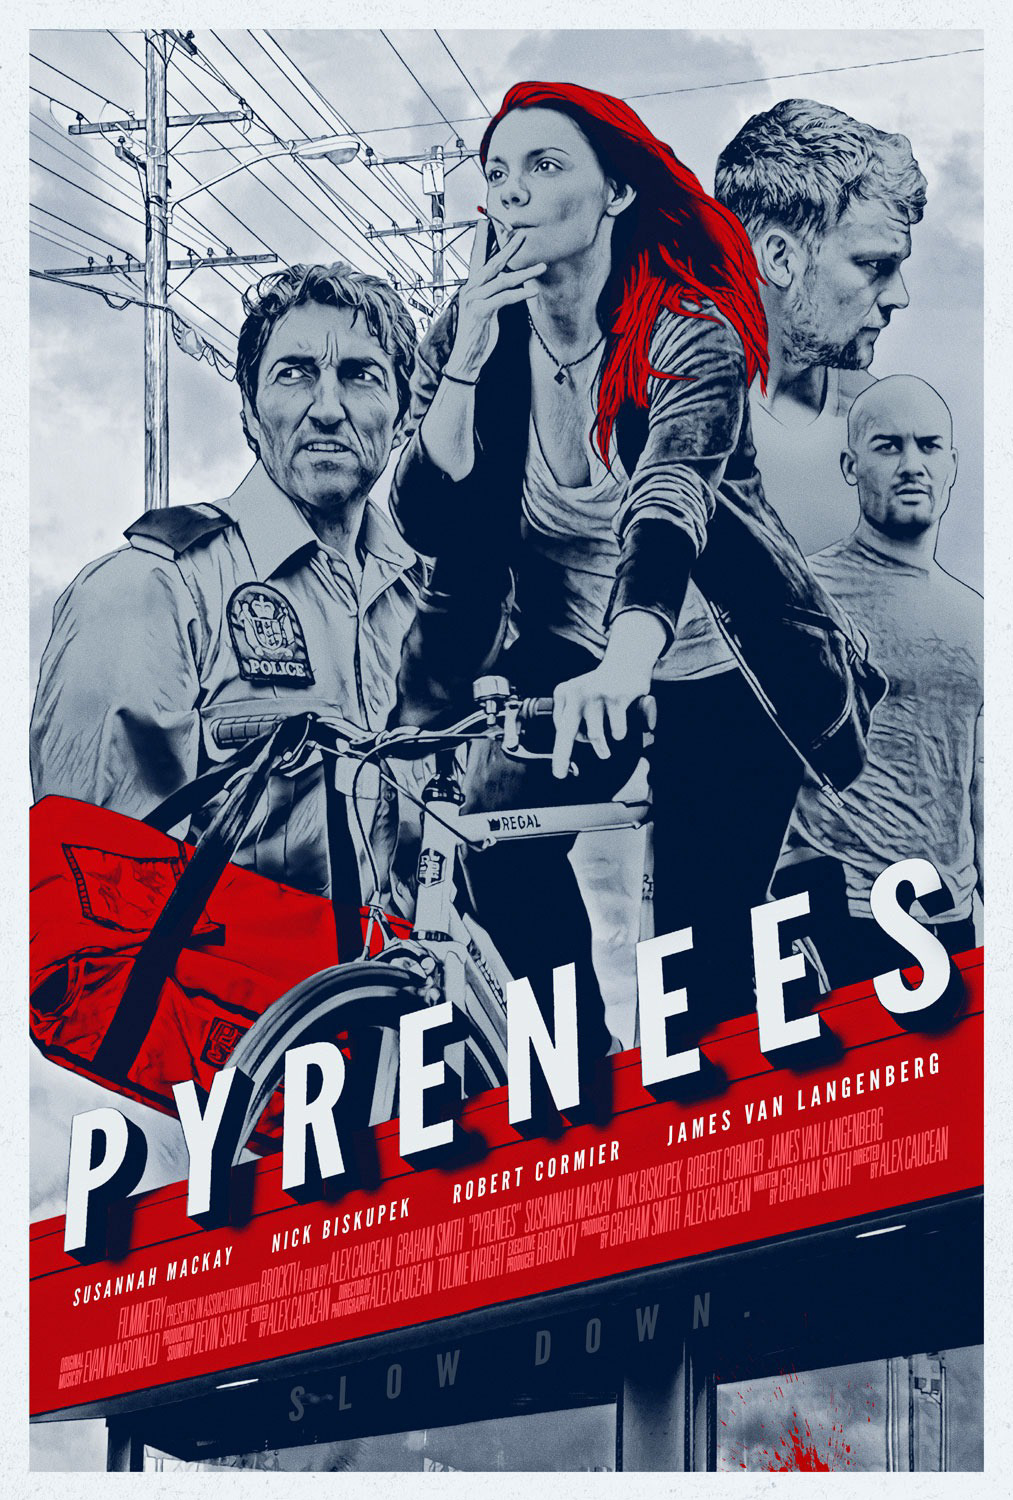 Pyrenees Movie Poster